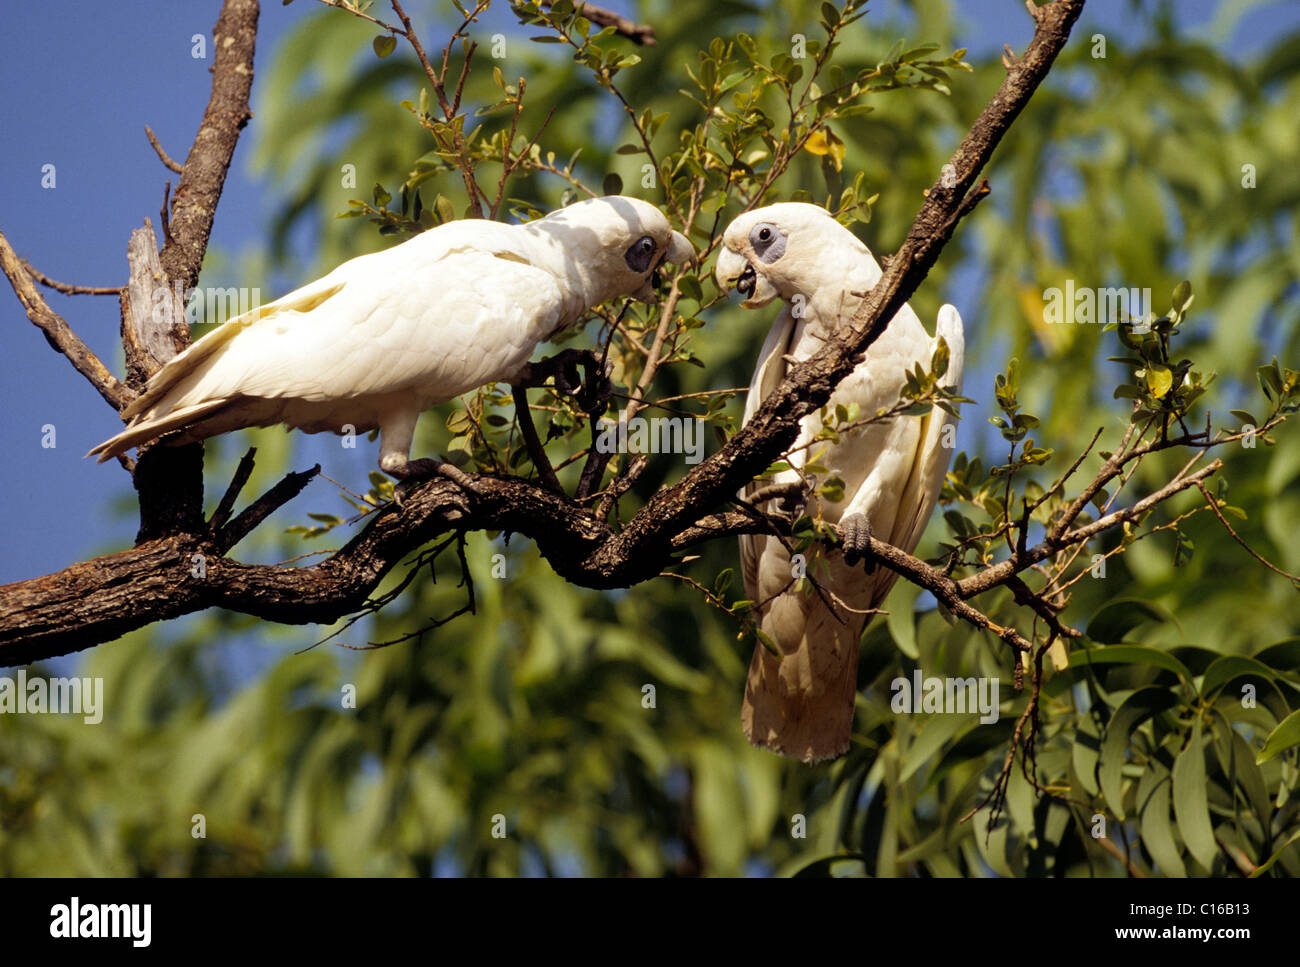 Two cockatoos (Cacatuidae) living in the wild, Cockatoo National Park, Northern Territory, Australia Stock Photo